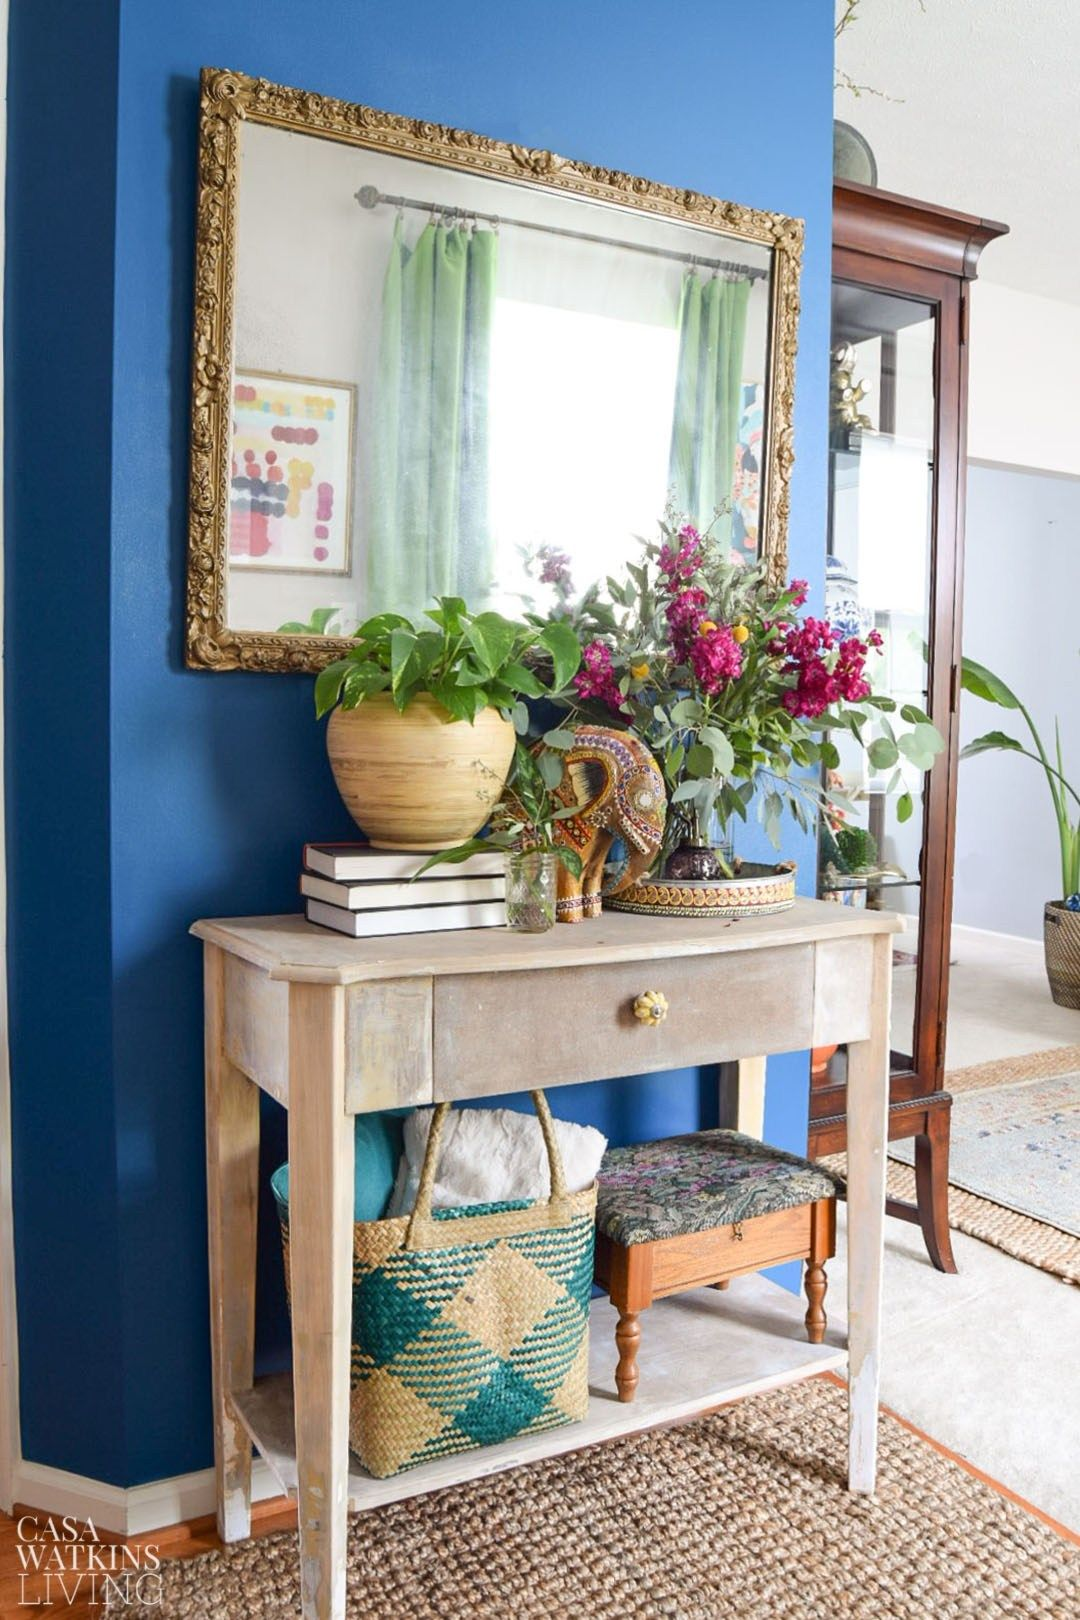 Room Showcase Designs Recommended Mdf Living: 7 Easy Fall Decorating Ideas For The Living Room And